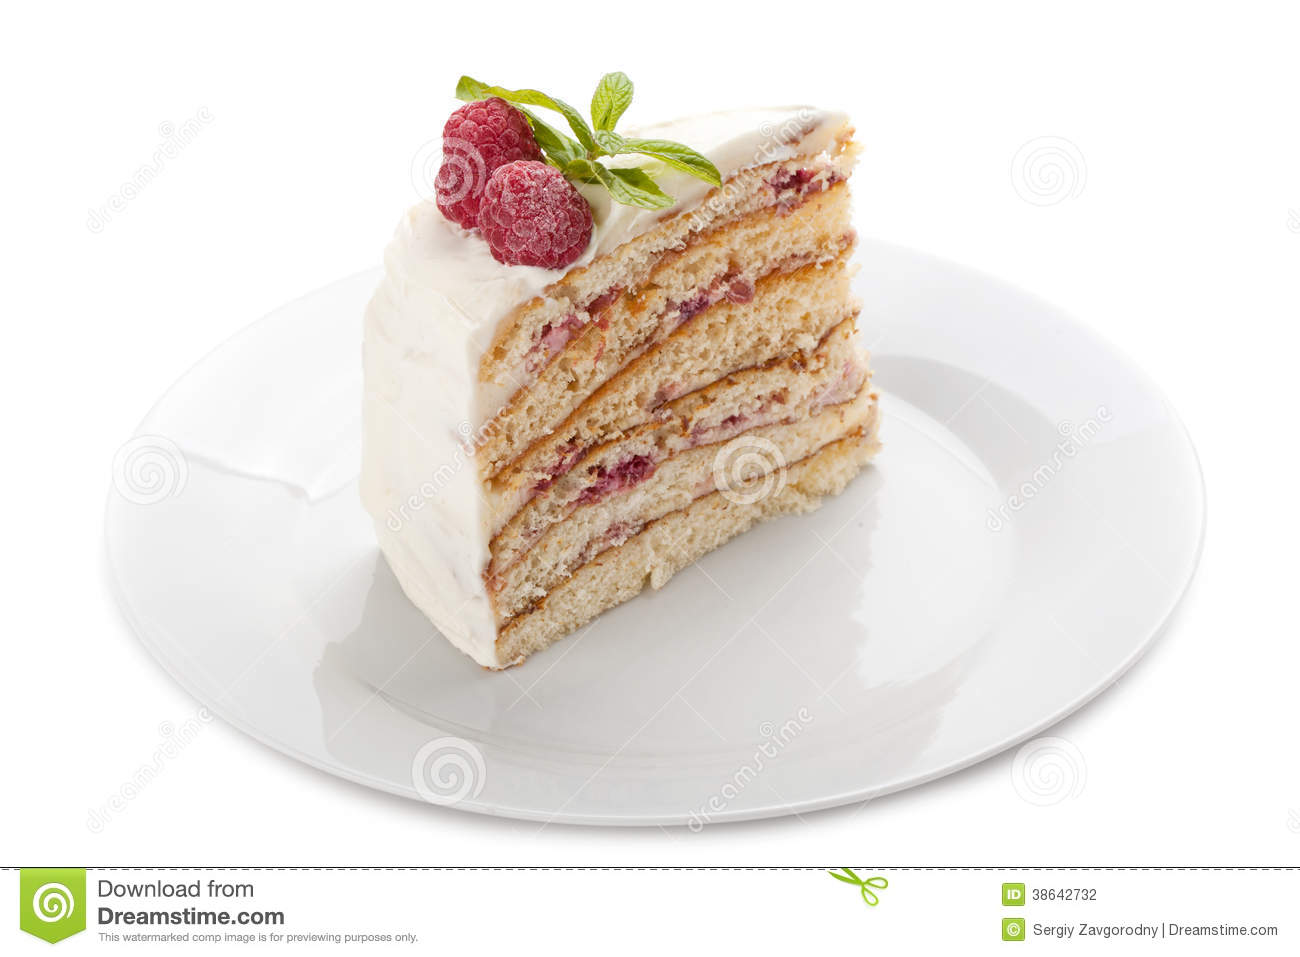 Clipart Slice Of Cake On A Plate : Piece Of Cake On A Plate. Stock Photography - Image: 38642732